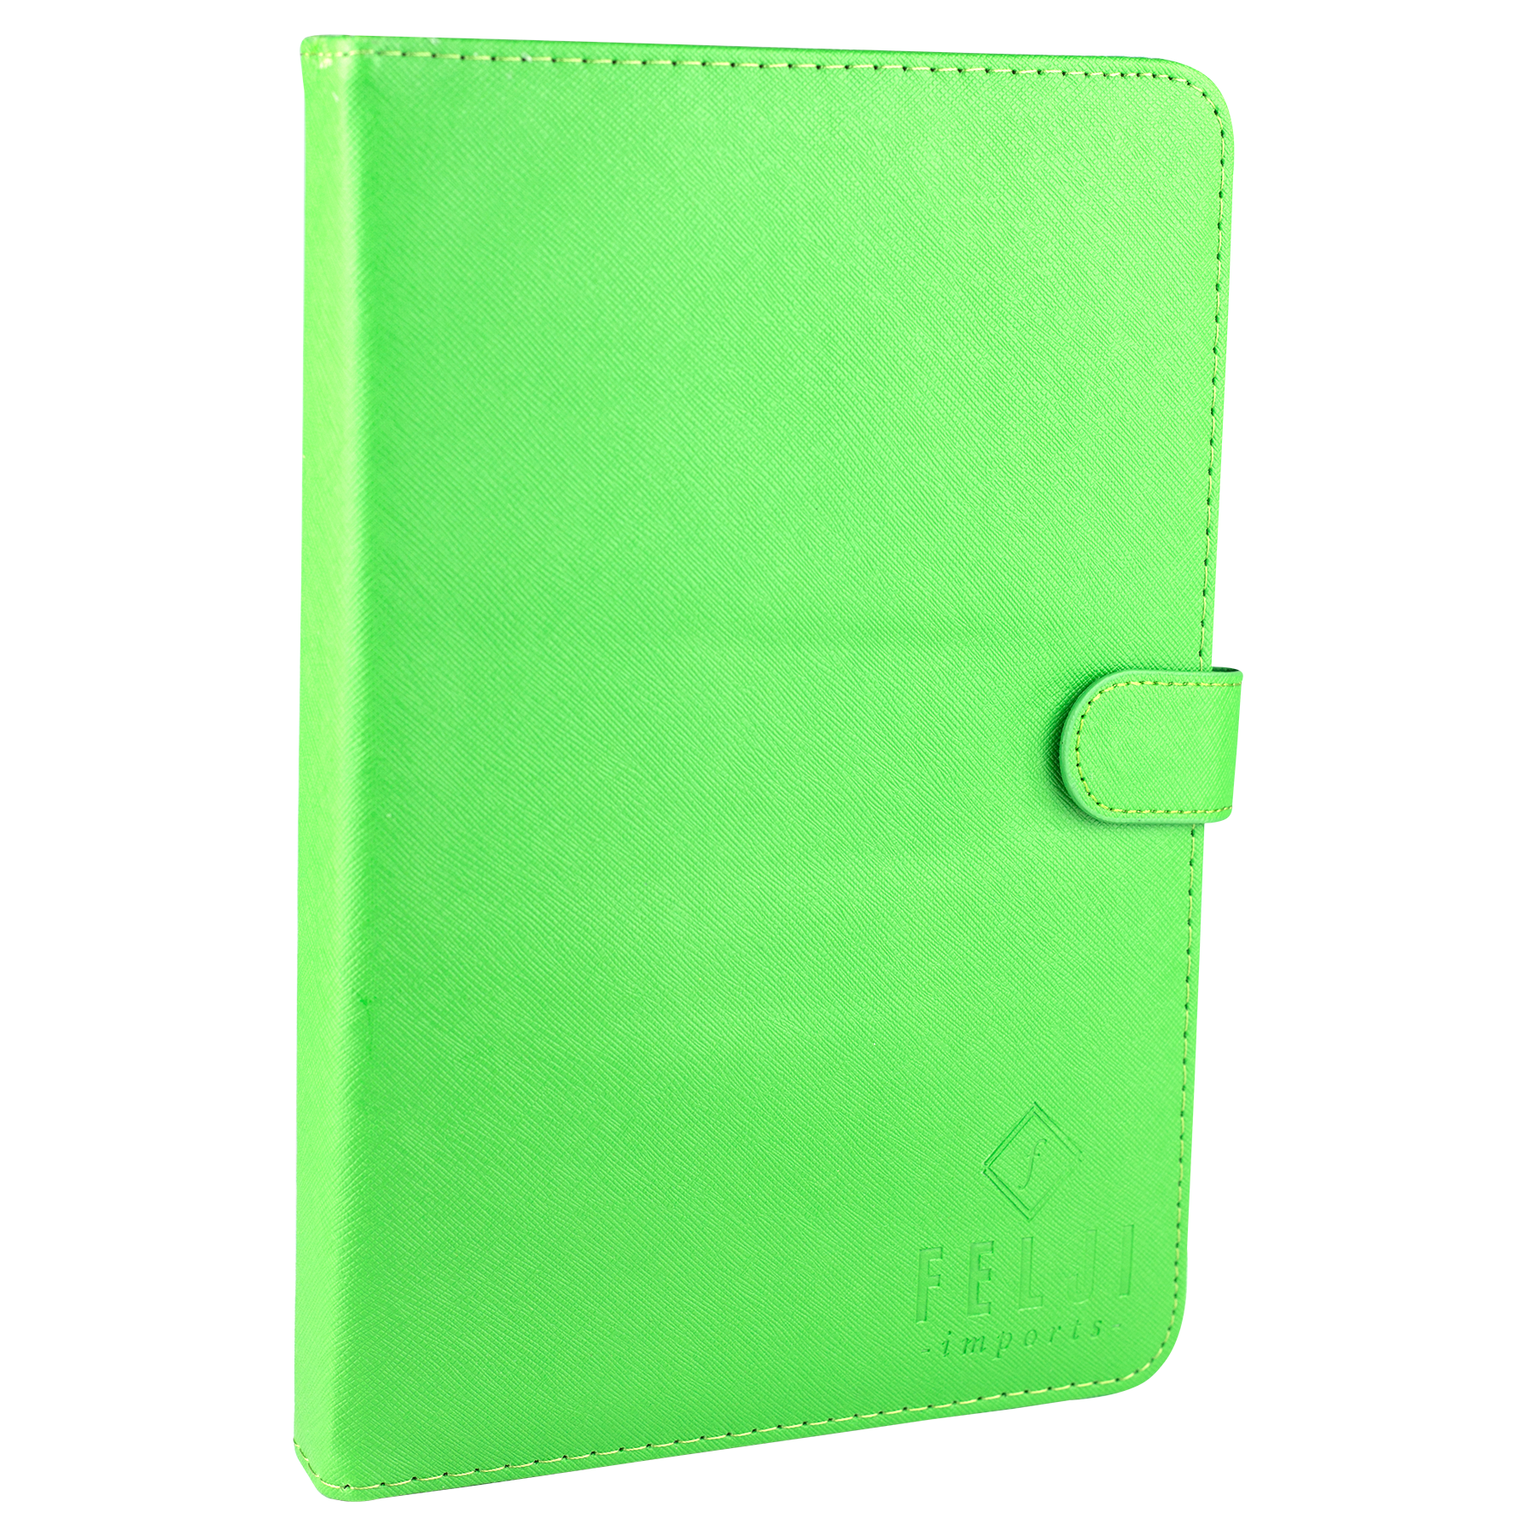 Felji Green Stand Leather Case Cover for Android Tablet 8-inch Universal with USB Keyboard